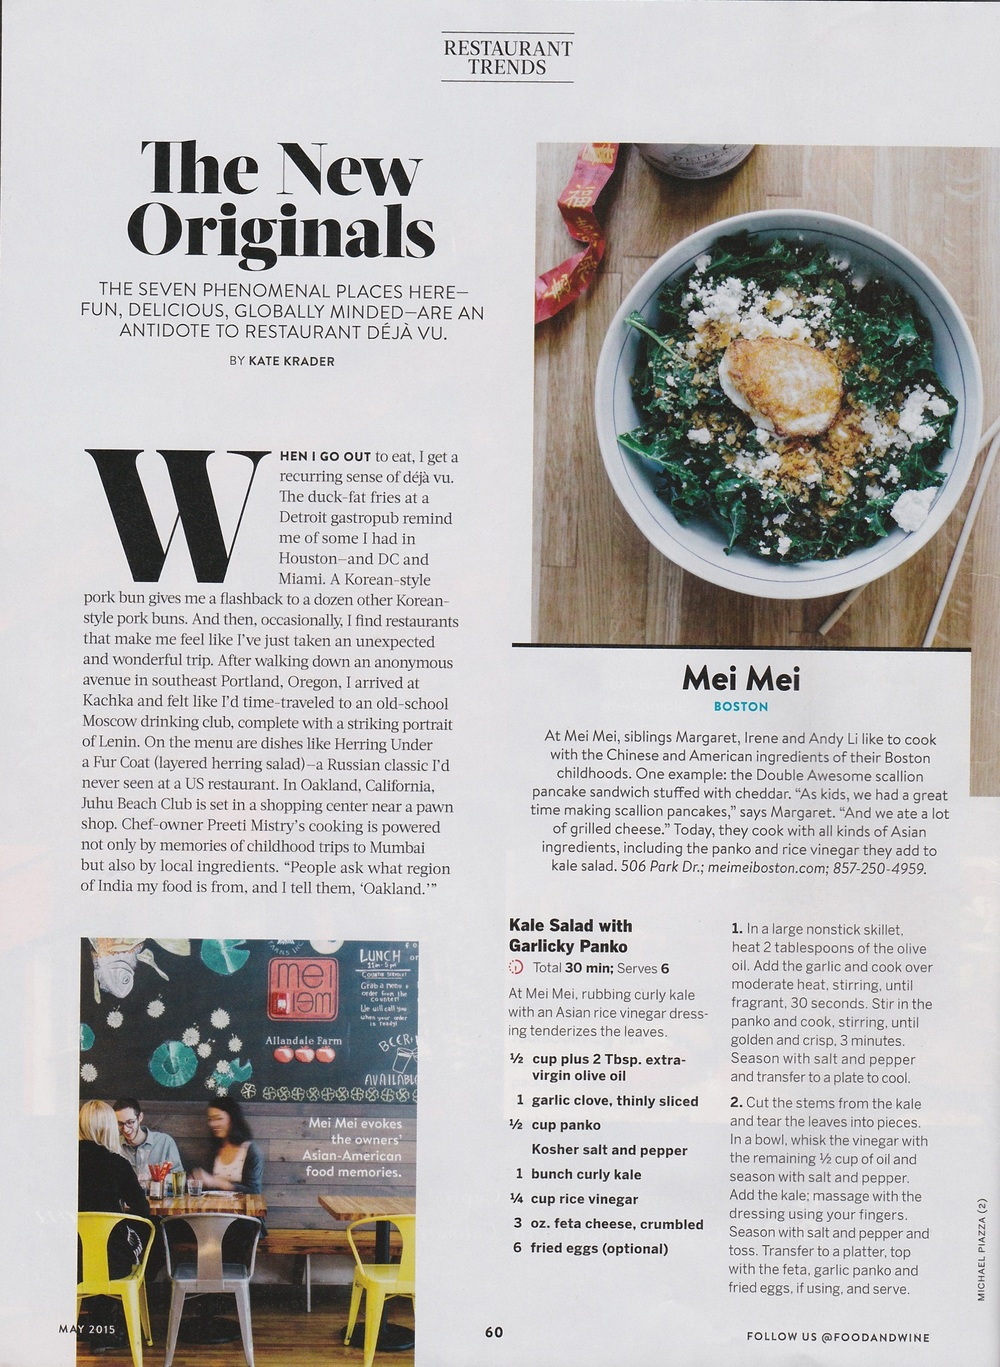 FOOD AND WINE MAGAZINE The New Originals May 2015 / By Kate Krader